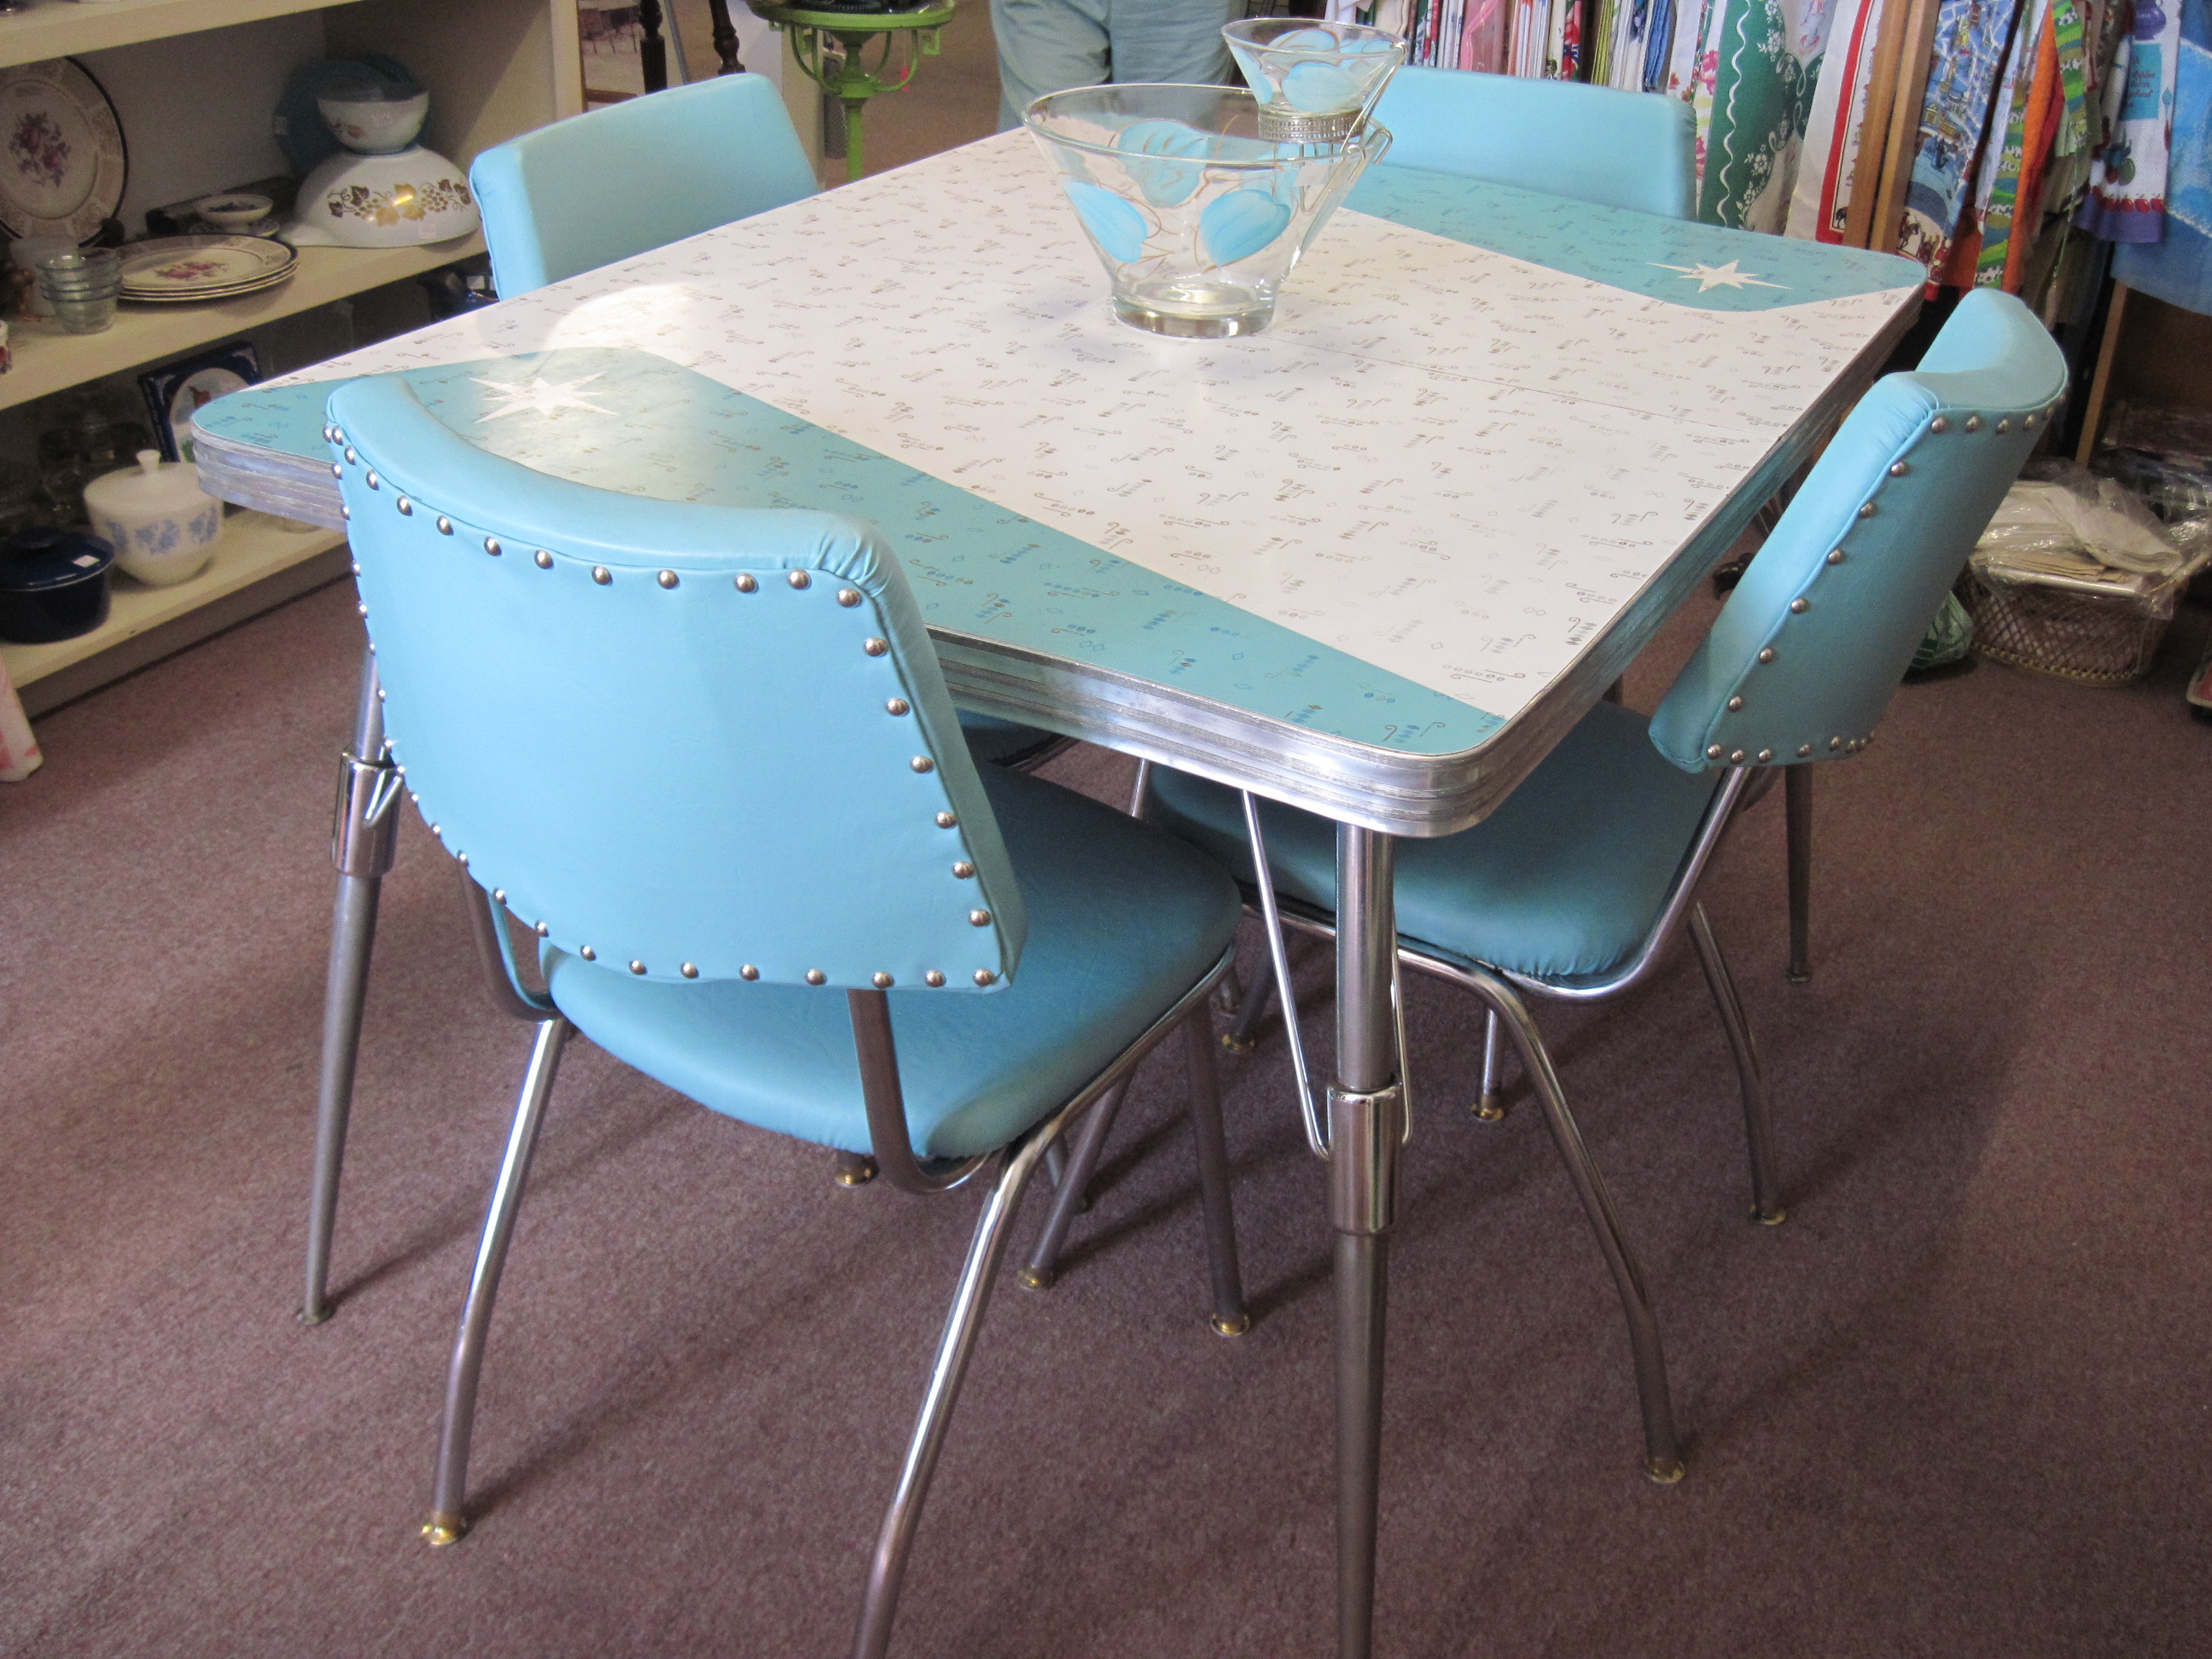 Formica table fabfindsblog for Kitchen dining sets on sale